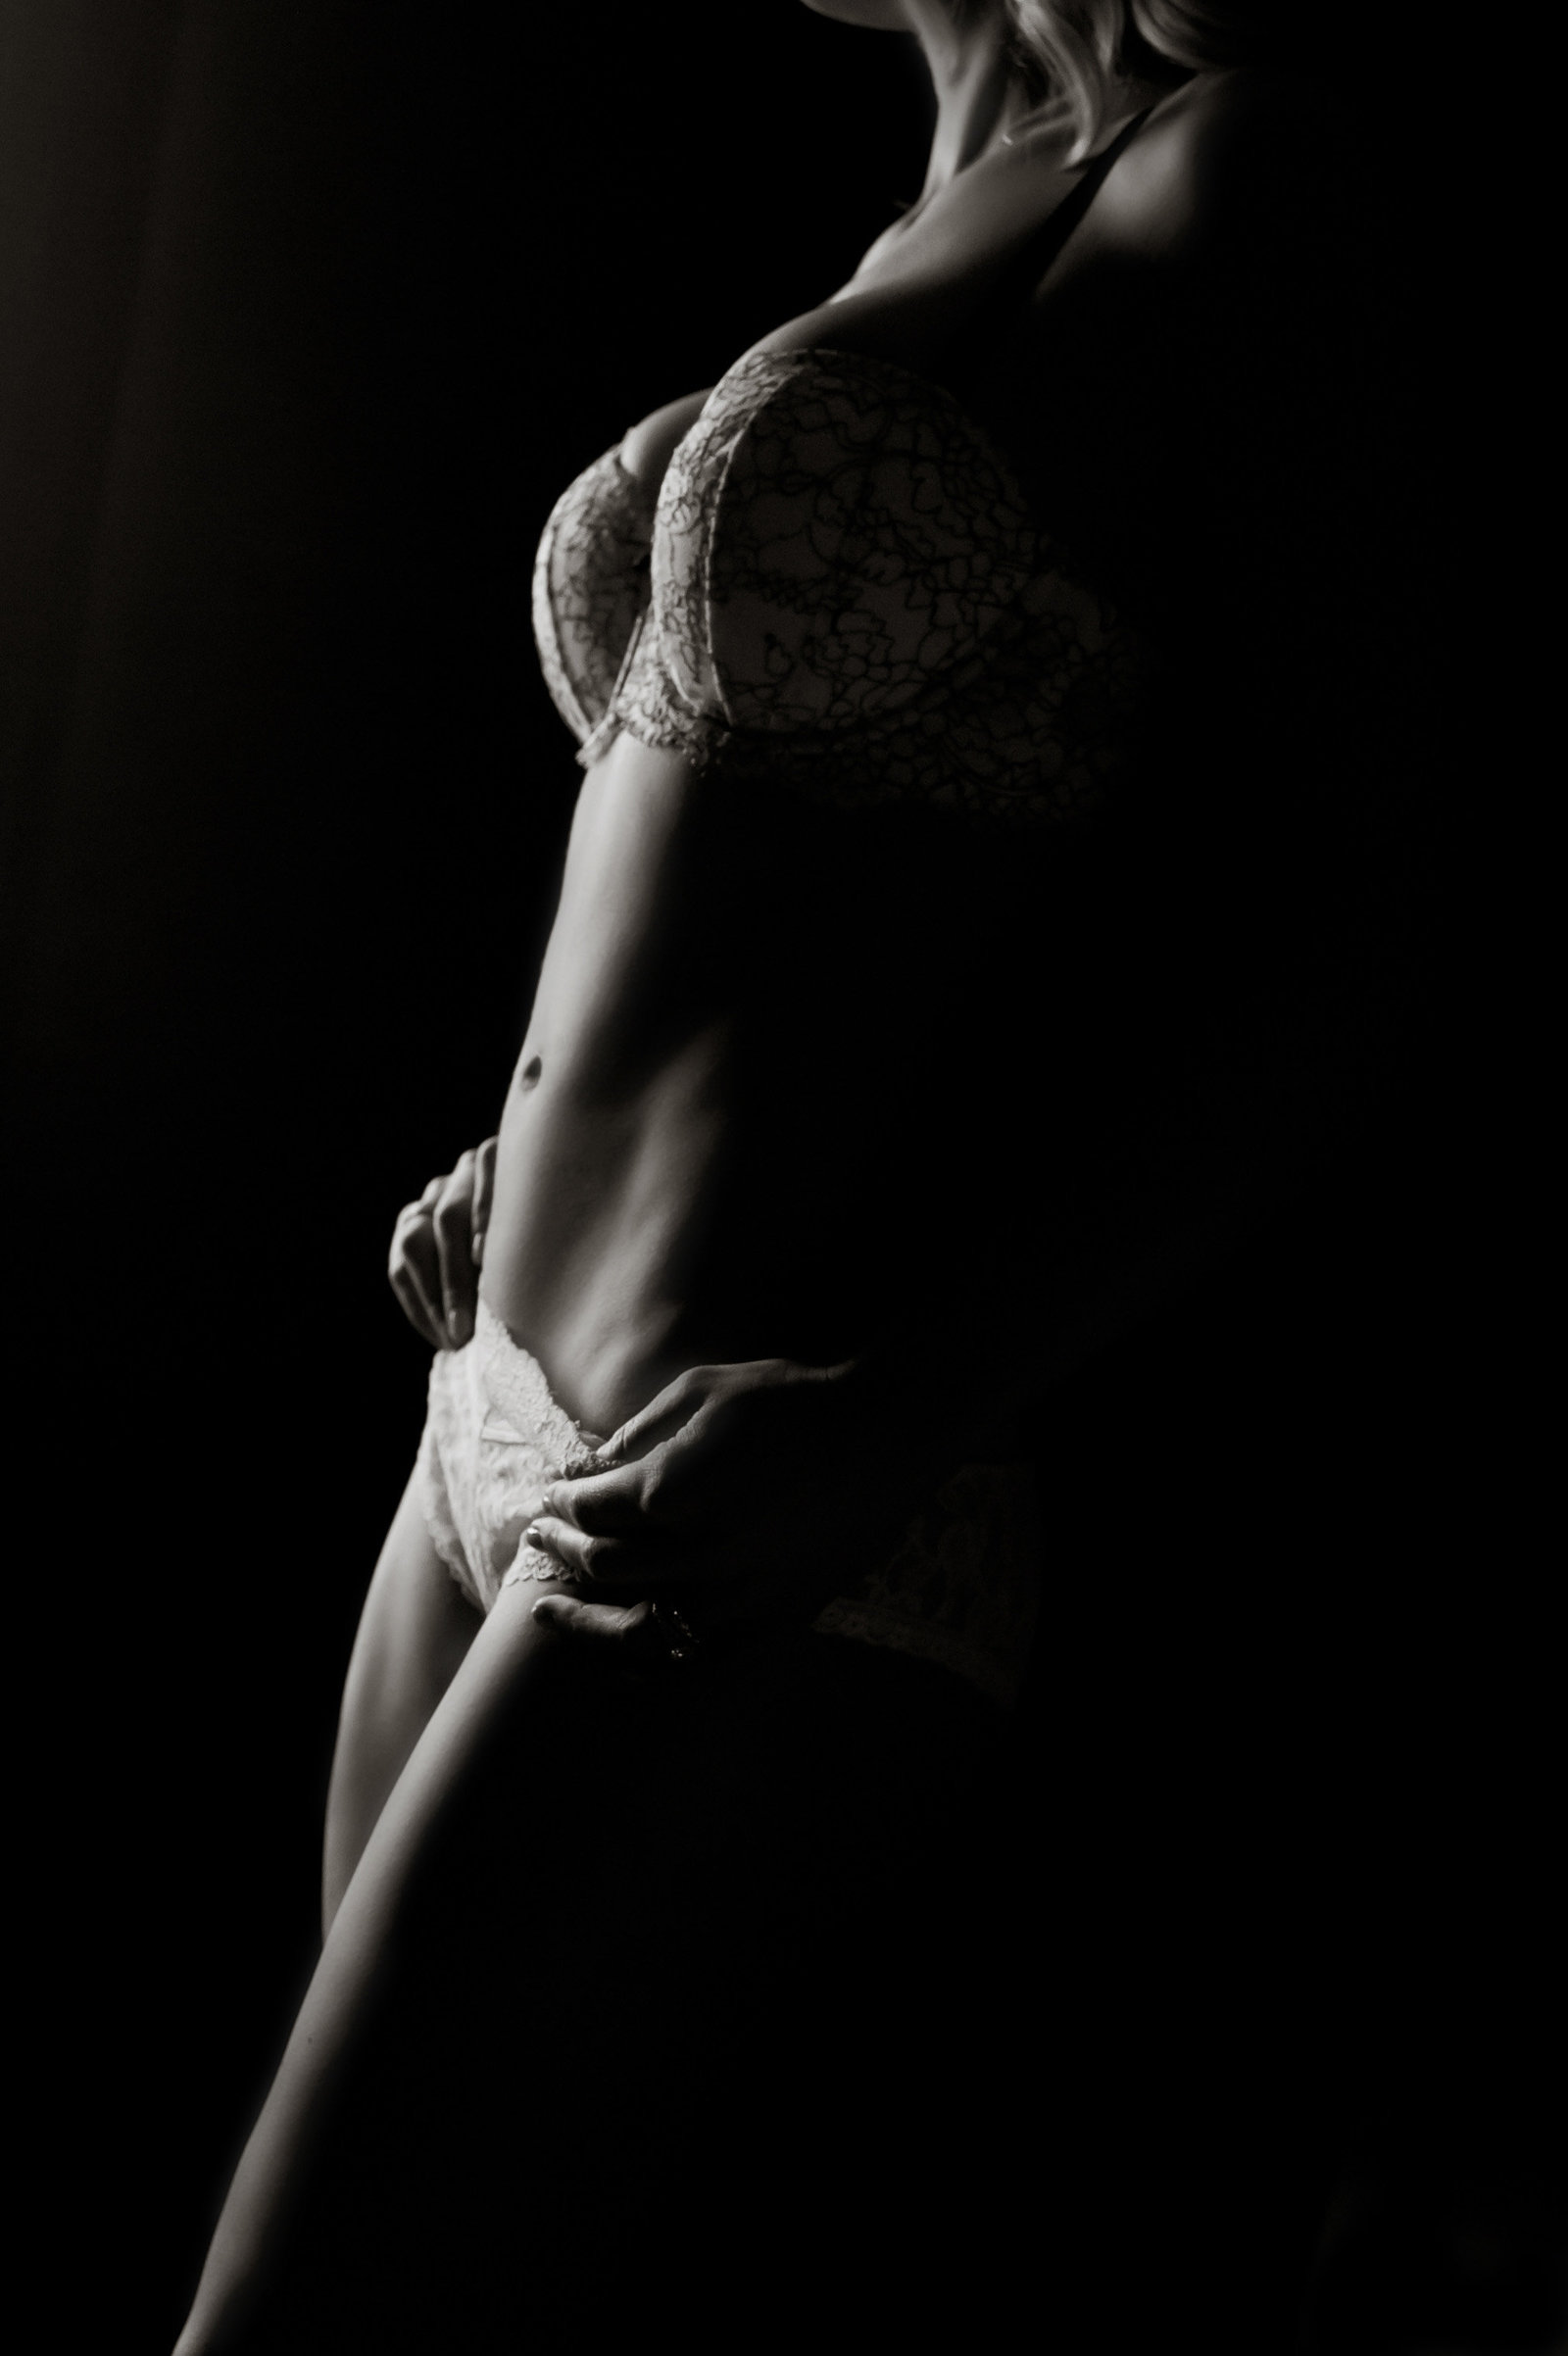 minneapolis-boudoir-photography-620